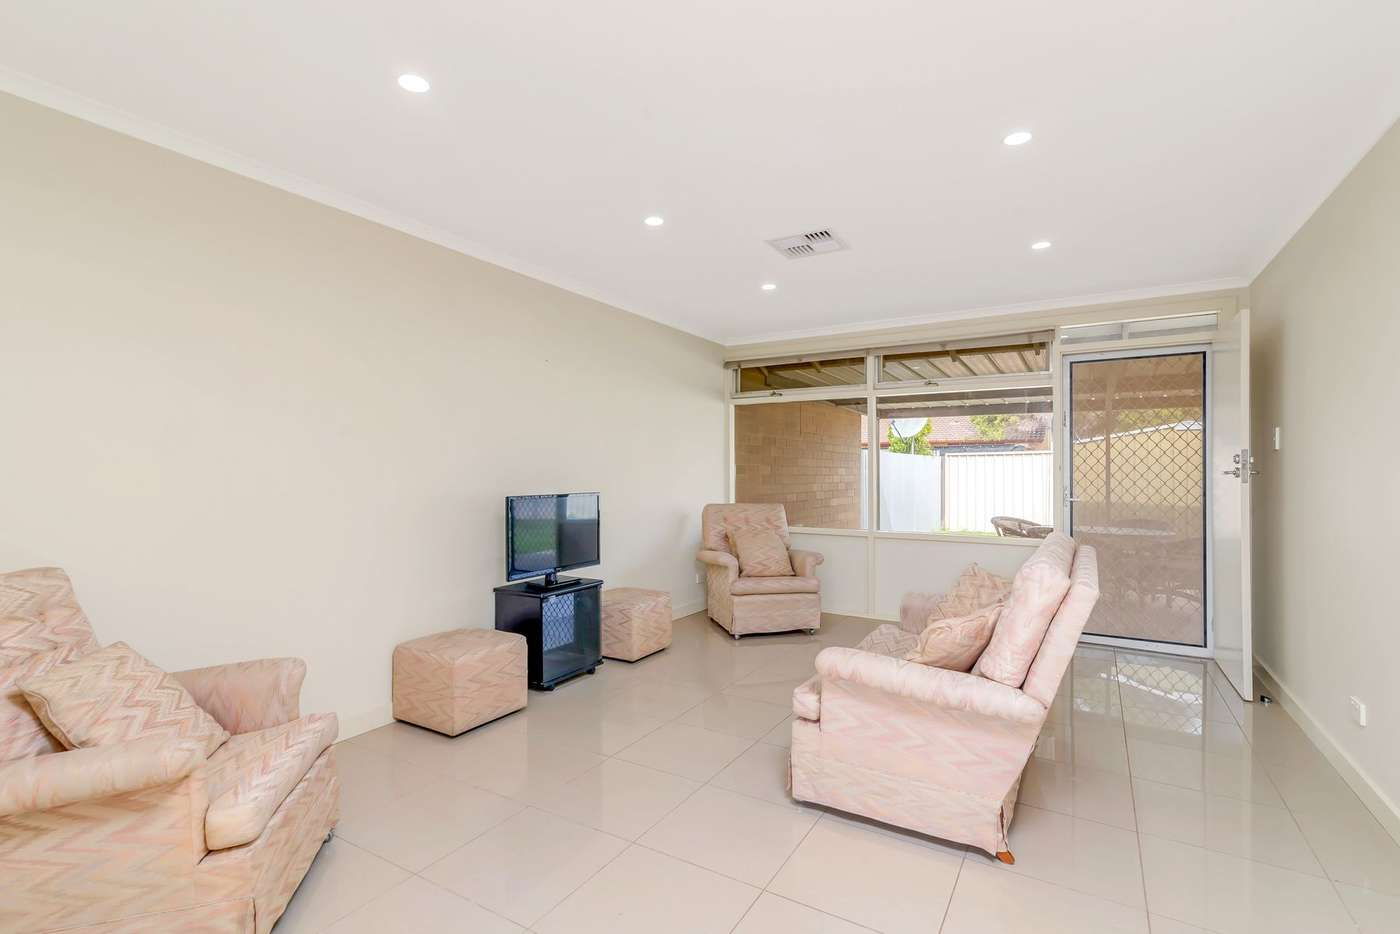 Fifth view of Homely house listing, 63 West Street, Semaphore Park SA 5019